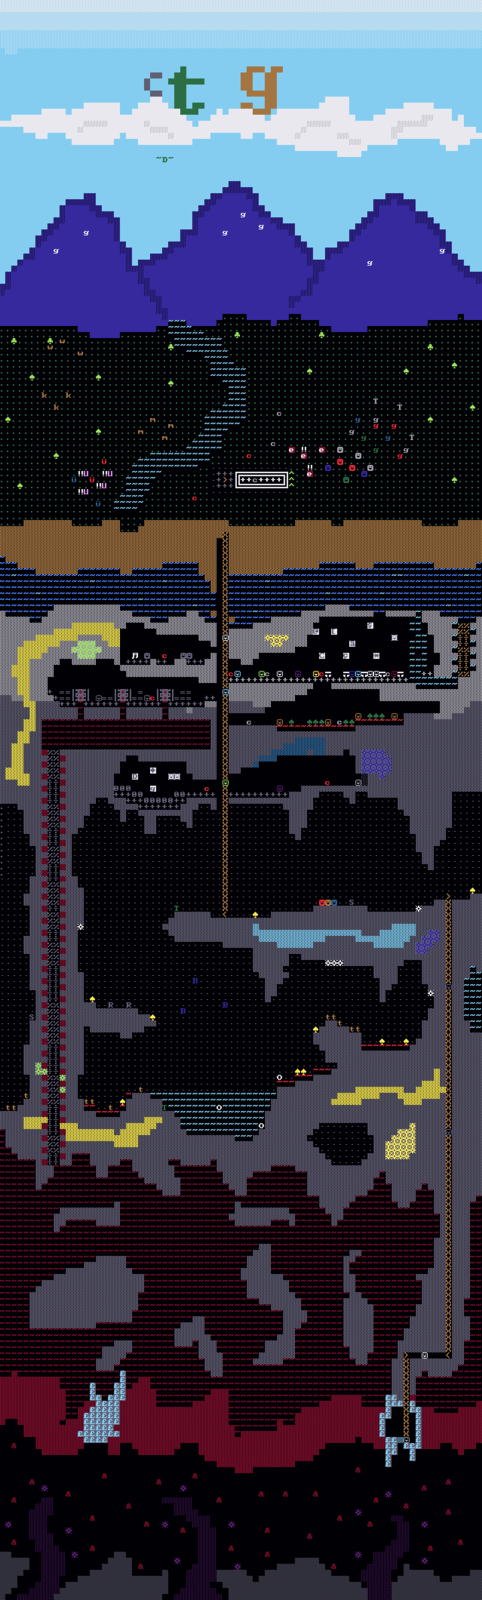 2D Rendition of Dwarf Fortress